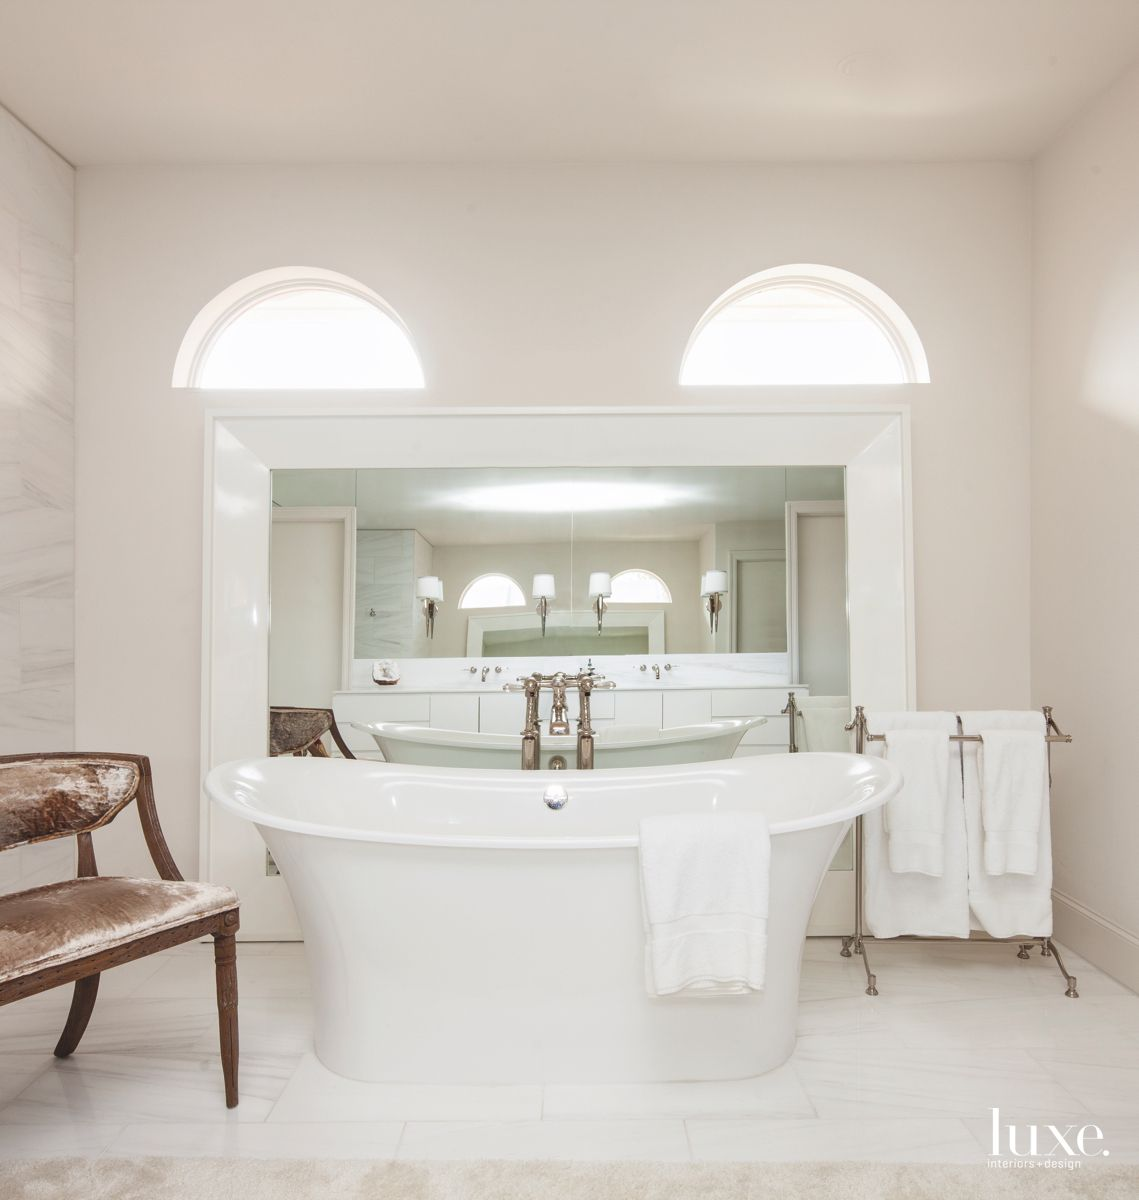 All-White Master Bathroom with Large Freestanding Tub and Arc Windows